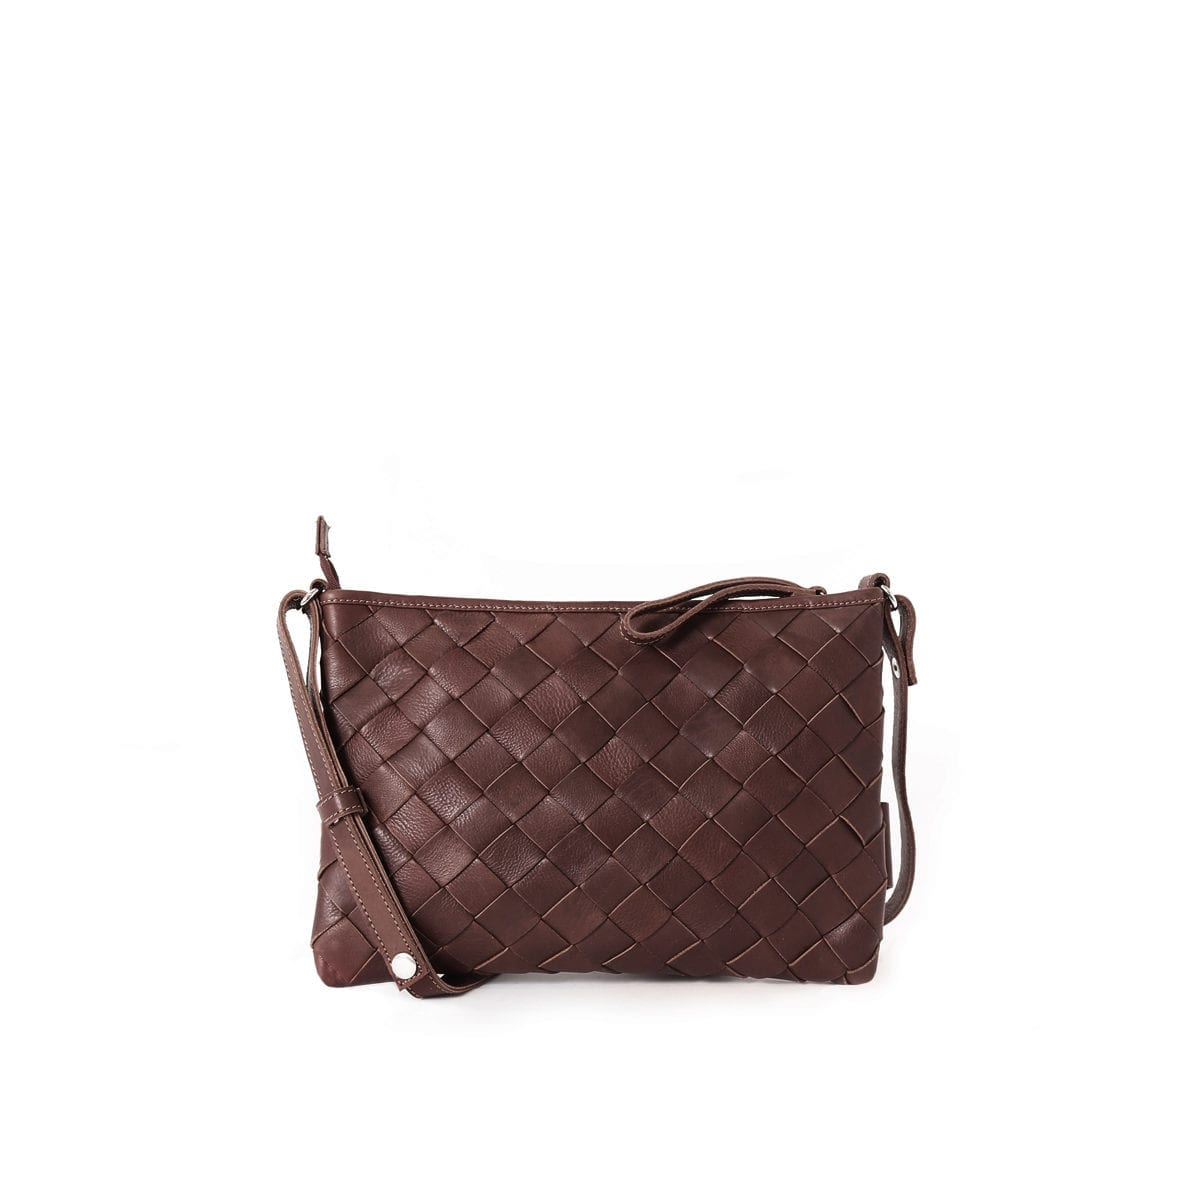 LUMI TRINE Woven Large Clutch in brown